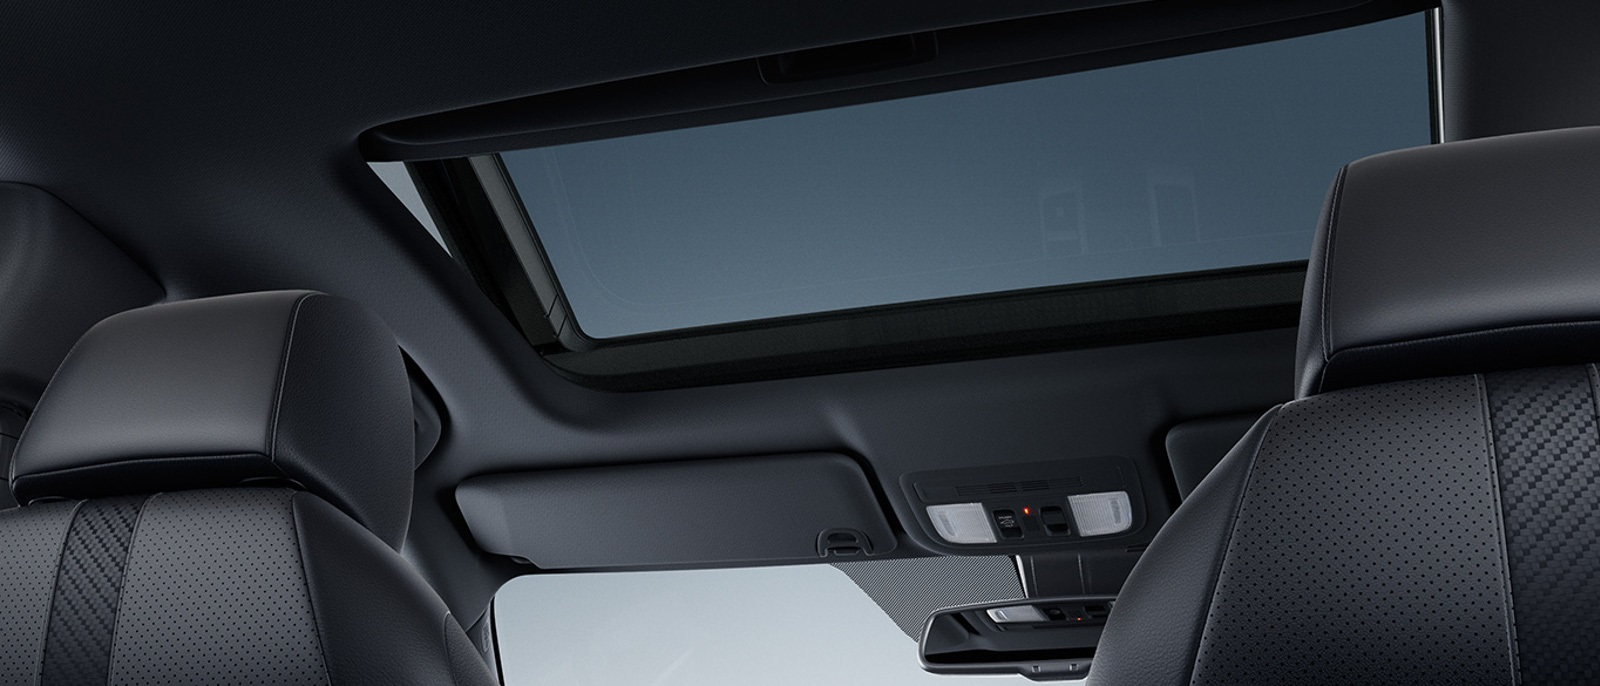 2017-honda-civic-hatchback-moonroof